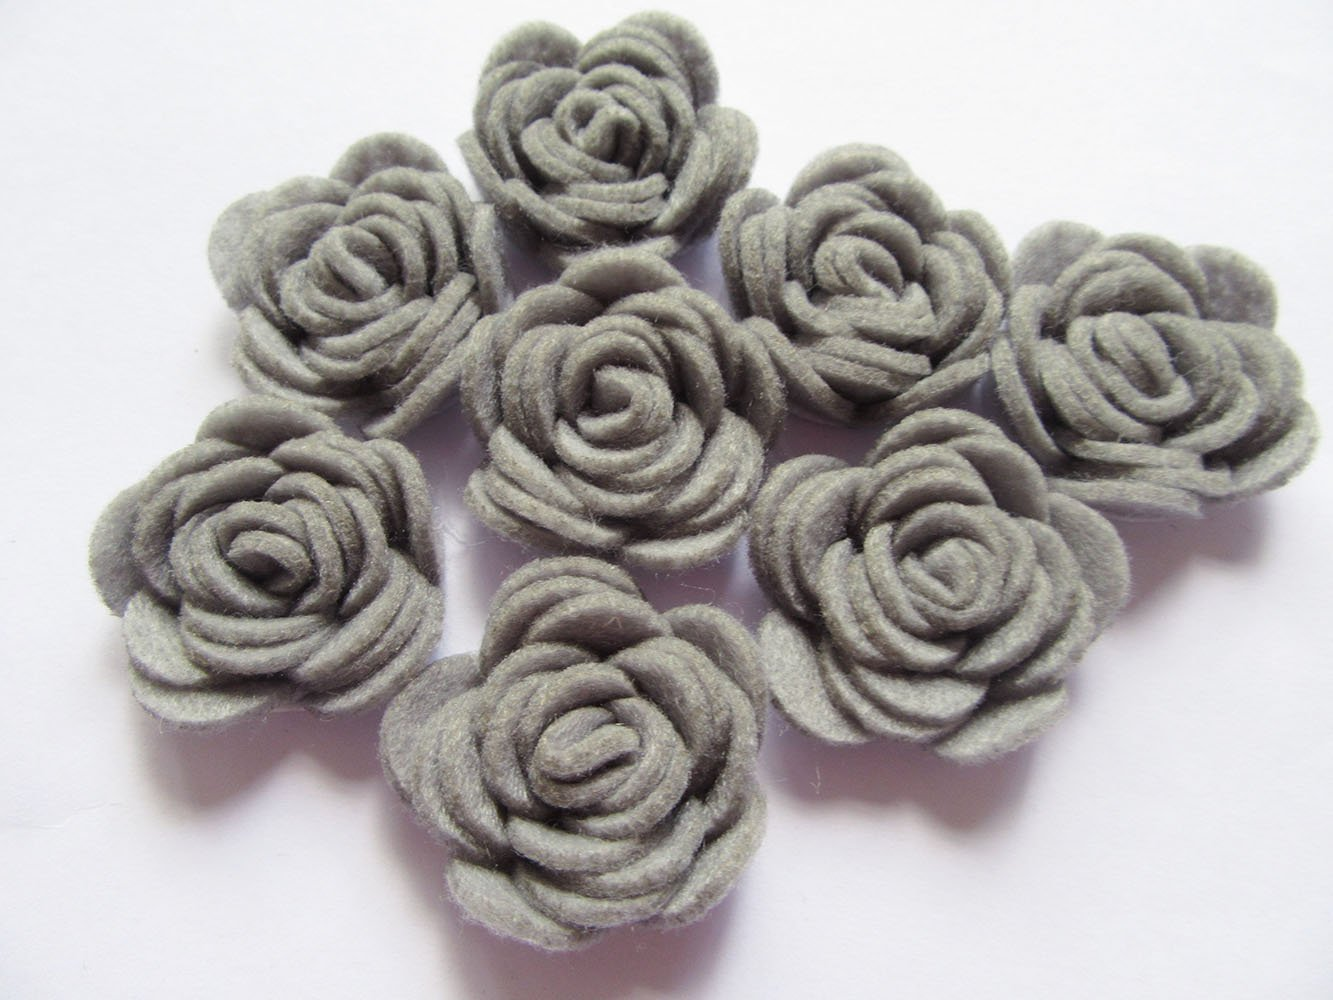 YYCRAFT-Pack-of-20PCS-Felt-Rose-15-4D-Flower-AppliqueBow